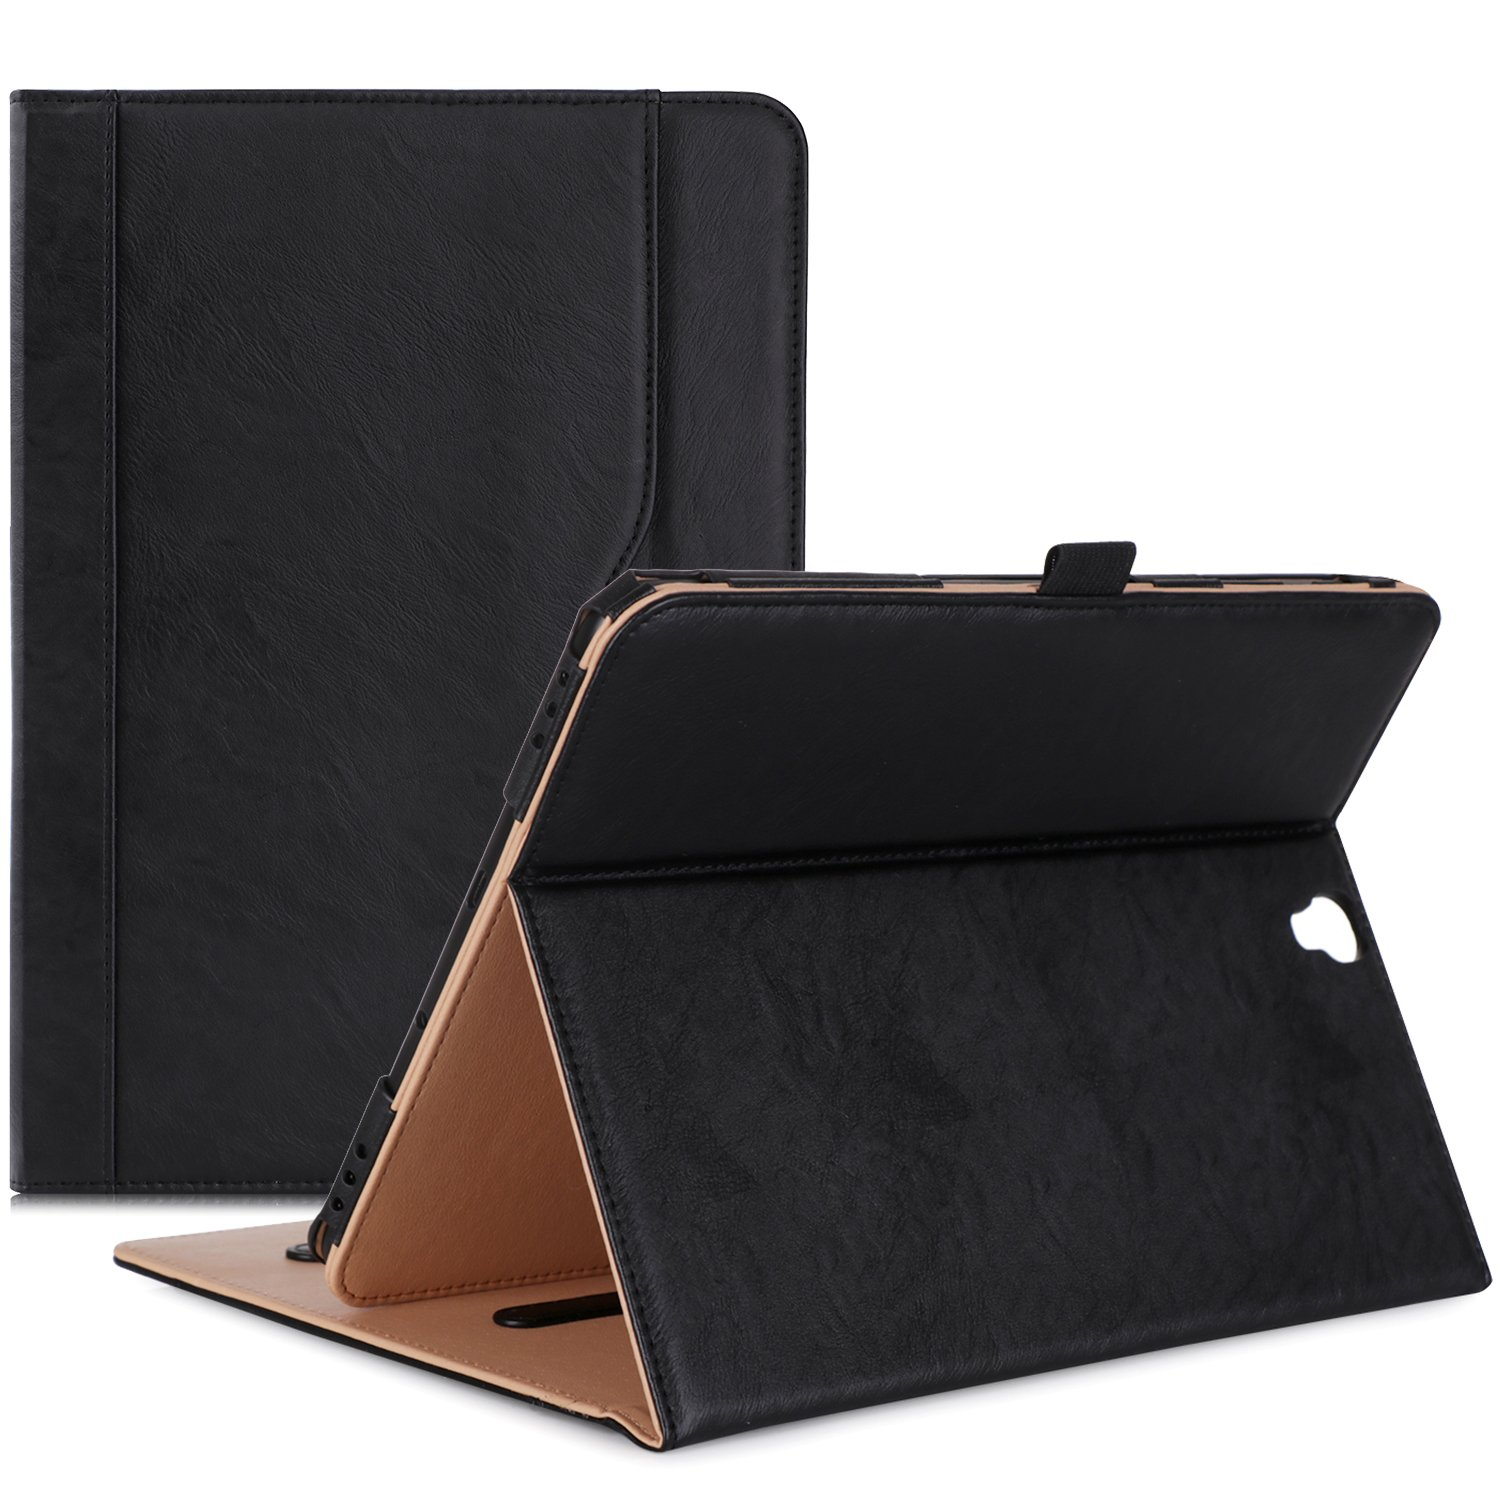 ProCase Galaxy Tab S3 9.7 Case, Stand Folio Case Cover for Galaxy Tab S3 Tablet (9.7 Inch, SM-T820 T825), with Multiple Viewing Angles, Document Card ...